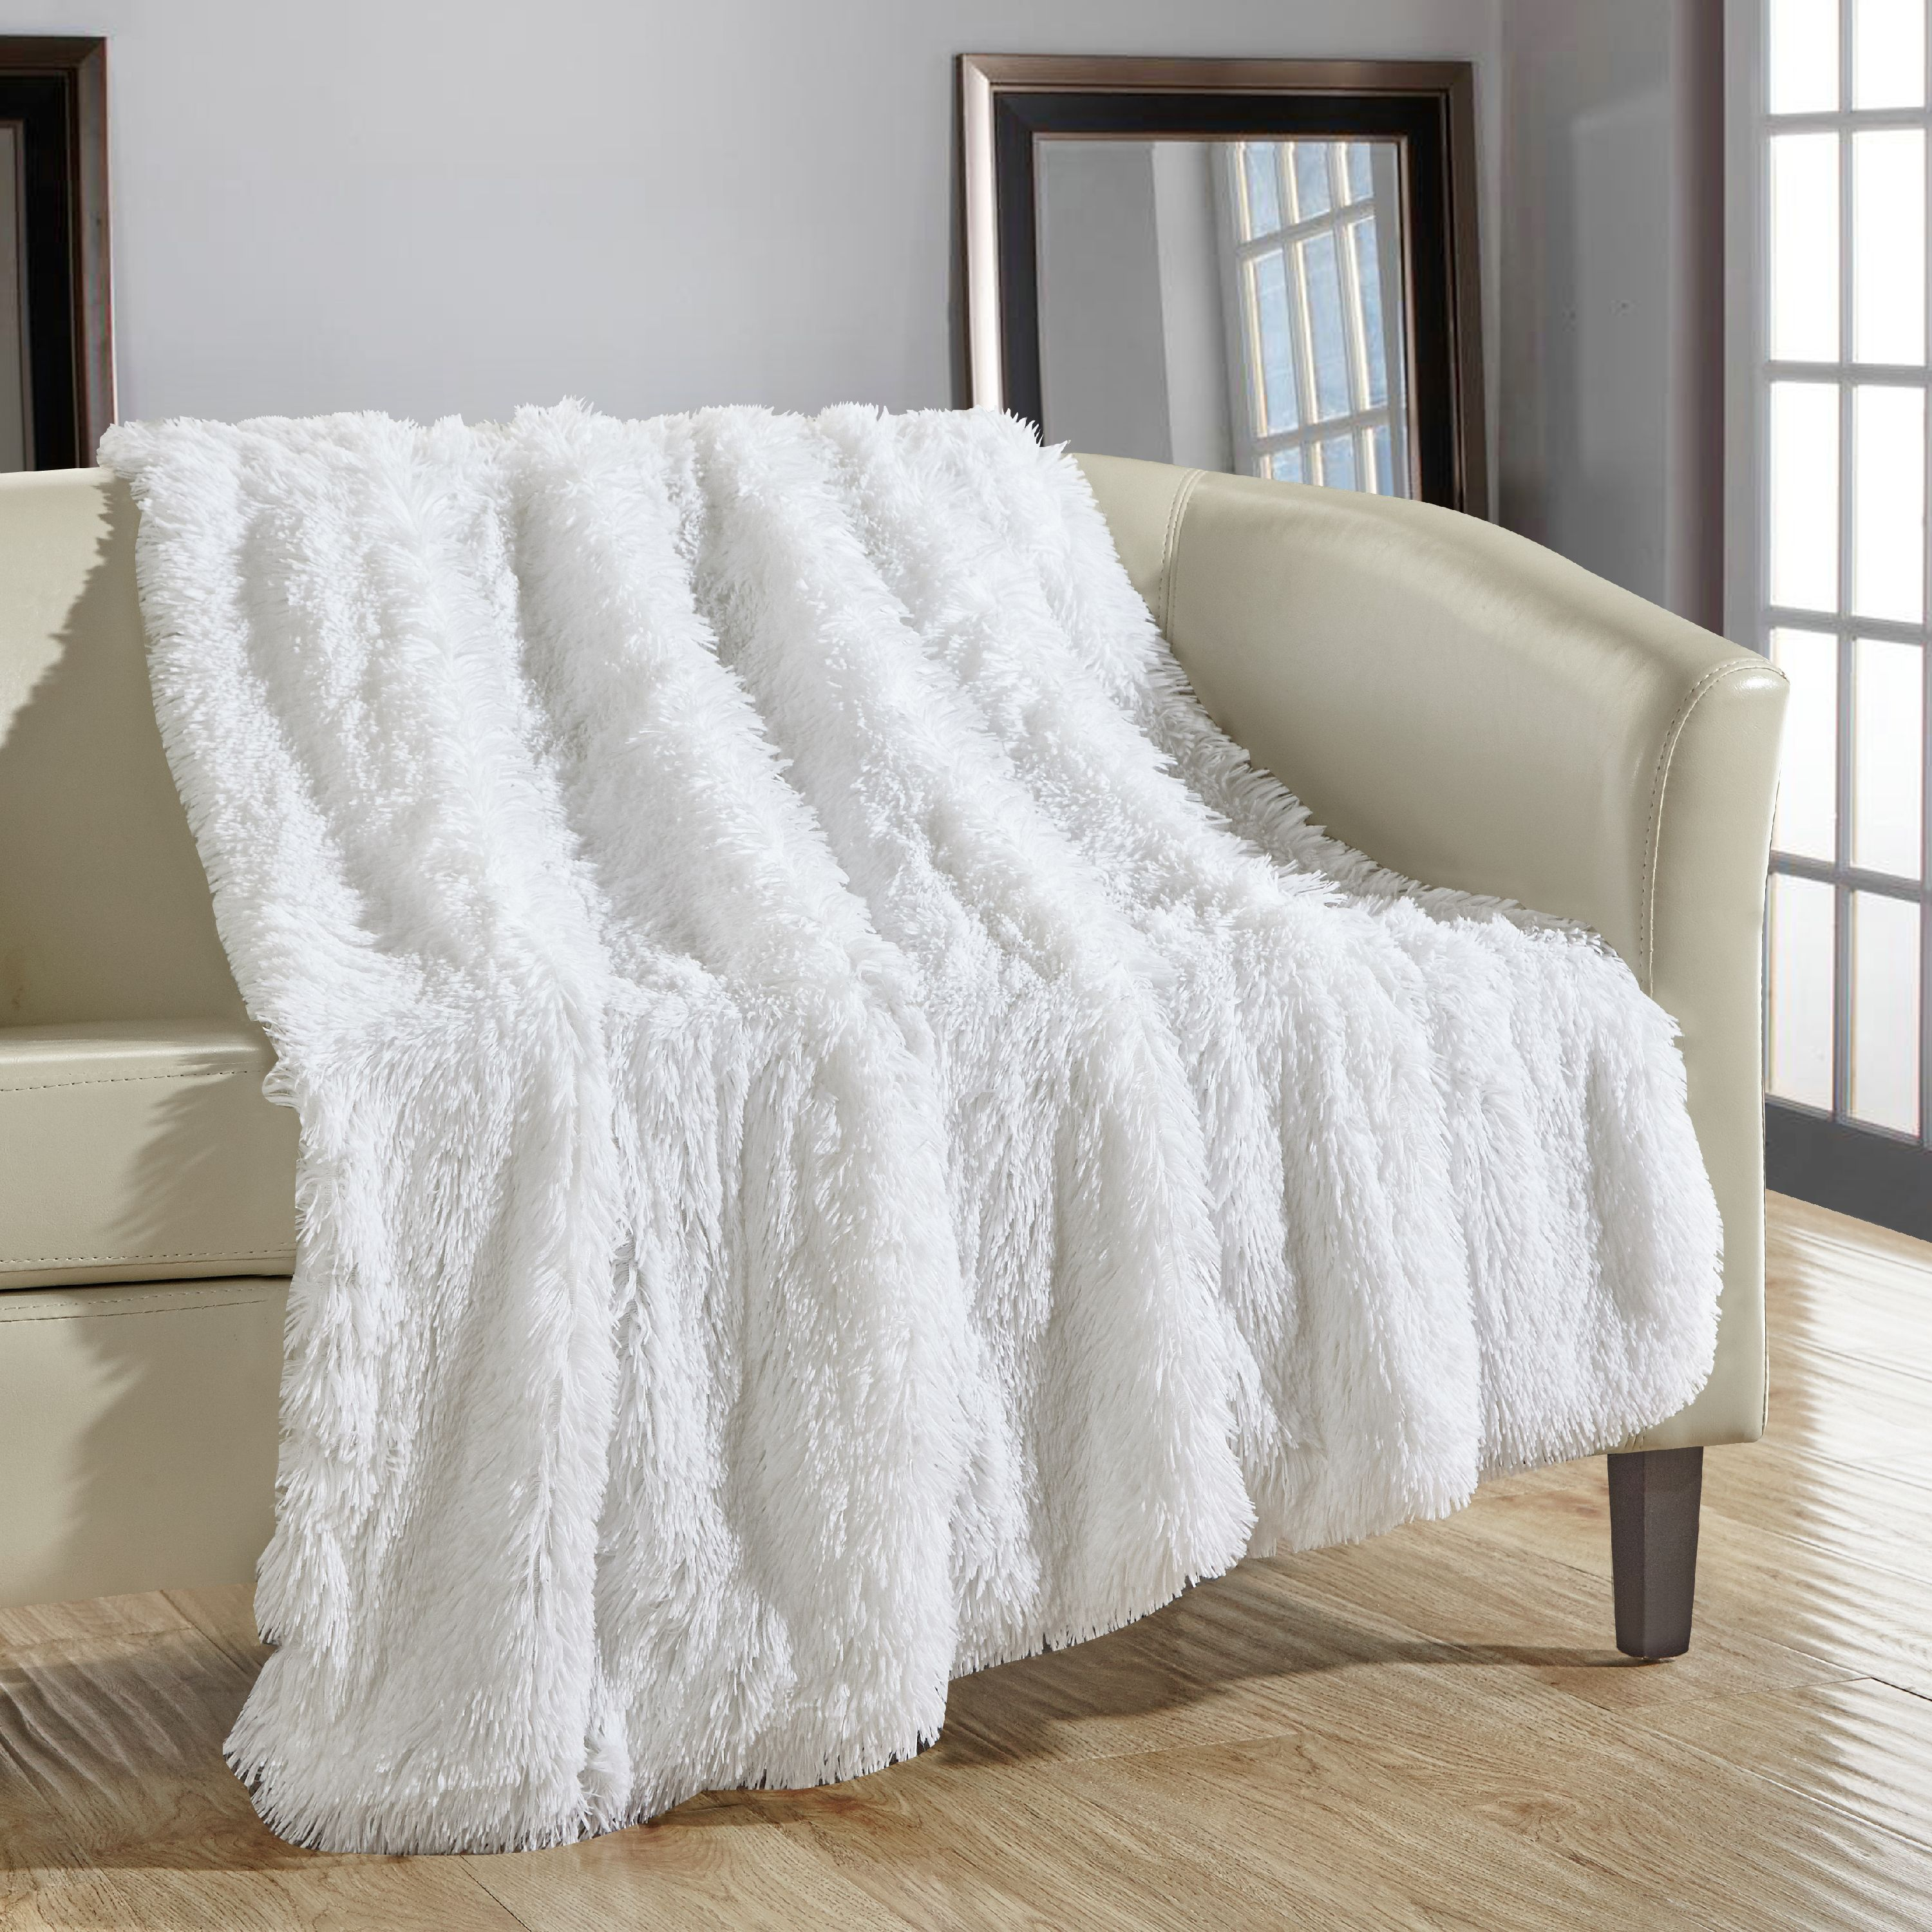 "Chic Home 1-Piece Juneau Shaggy Faux Fur Super soft Ultra Plush Decorative Throw Blanket 50 x 60"", Beige"